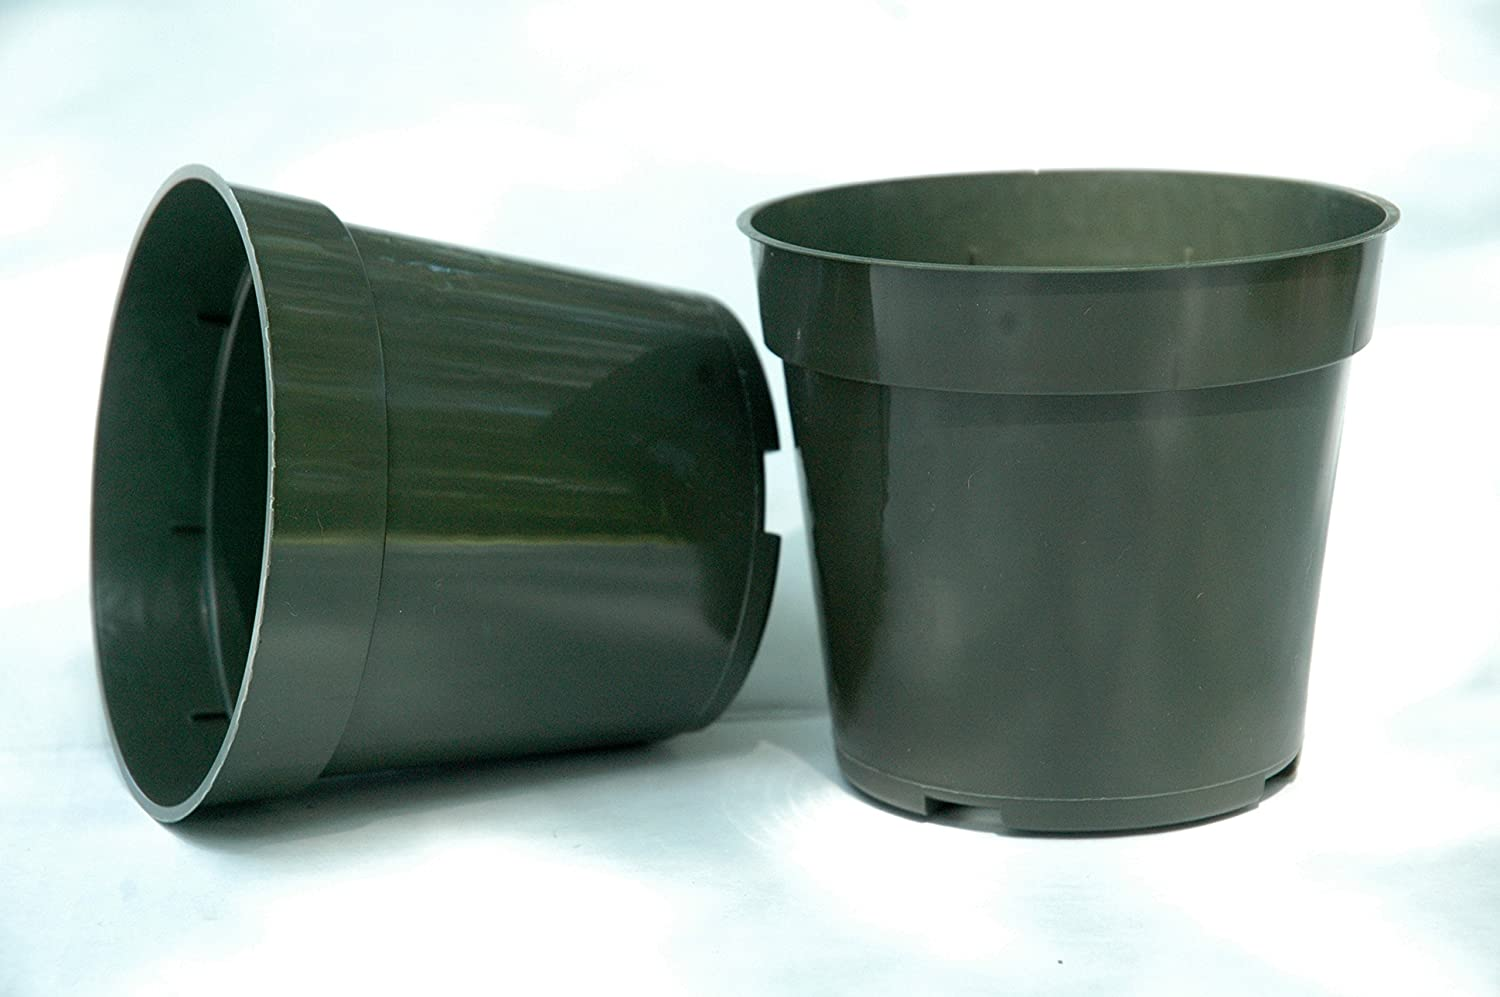 Plastic Pots for Plants, Cuttings, Seedlings 4 Inch Standard Size 20 Pack